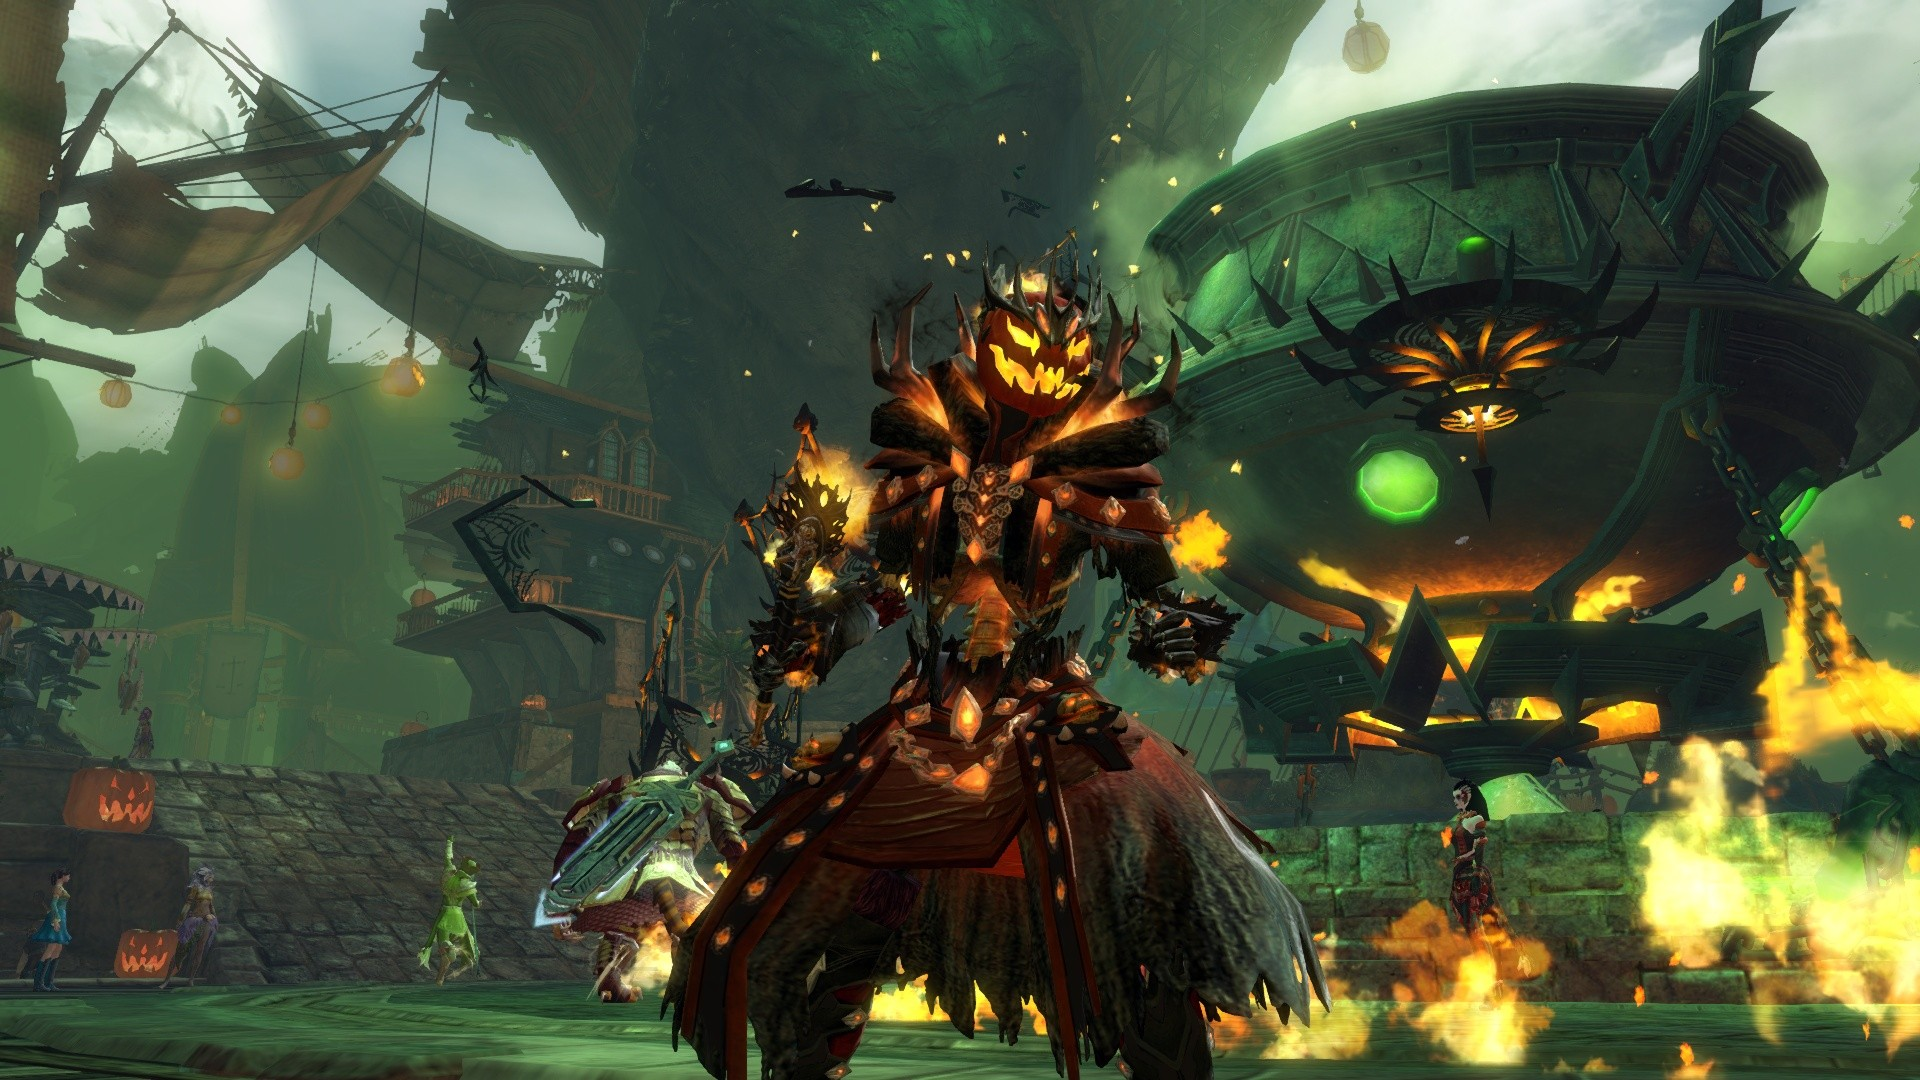 GW2-Mad King costume in flames!!!